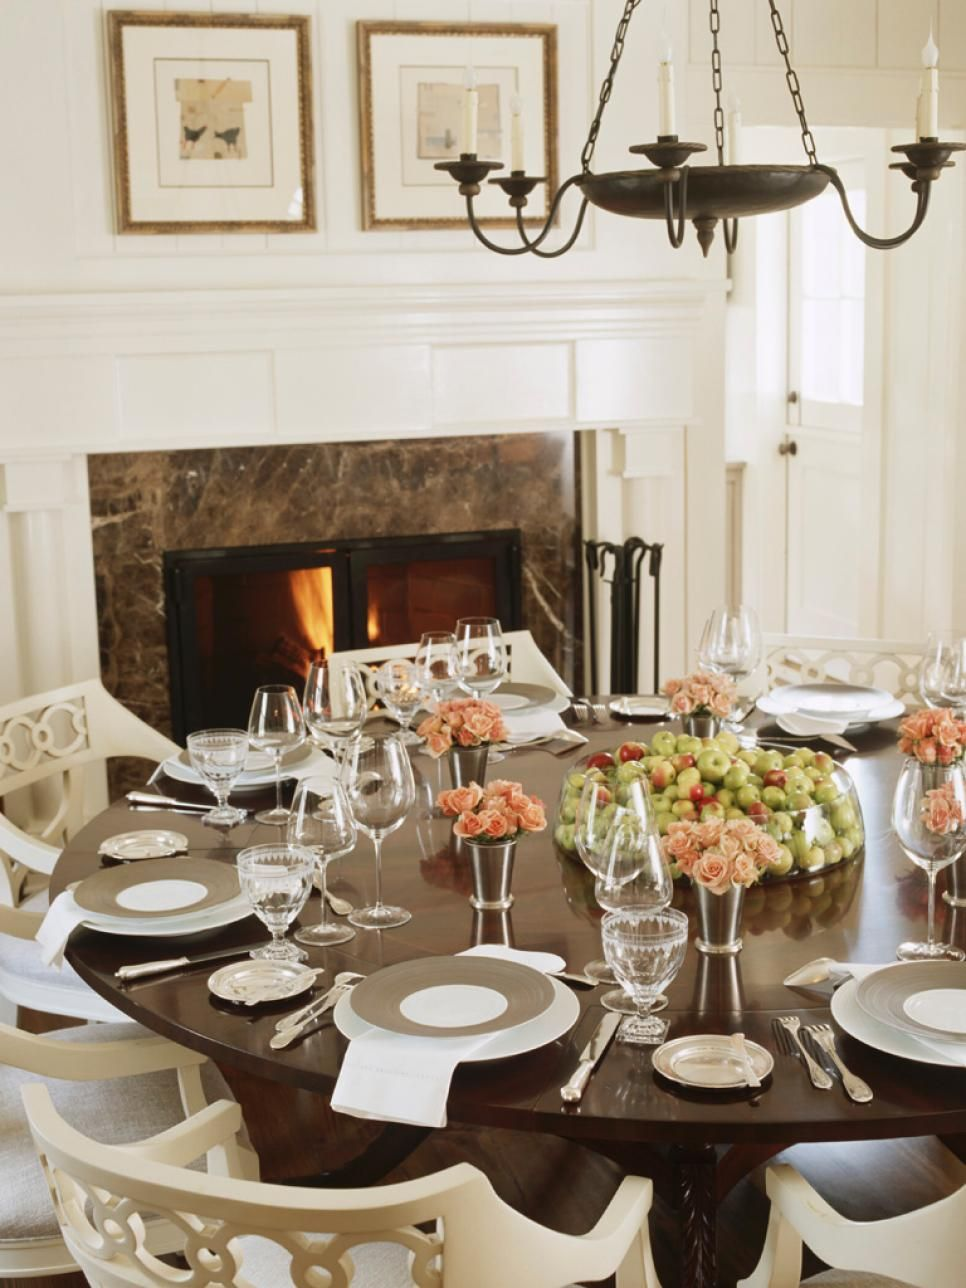 Rooms Viewer Dining Room Centerpiece Dining Room Table Centerpieces Beautiful Dining Rooms